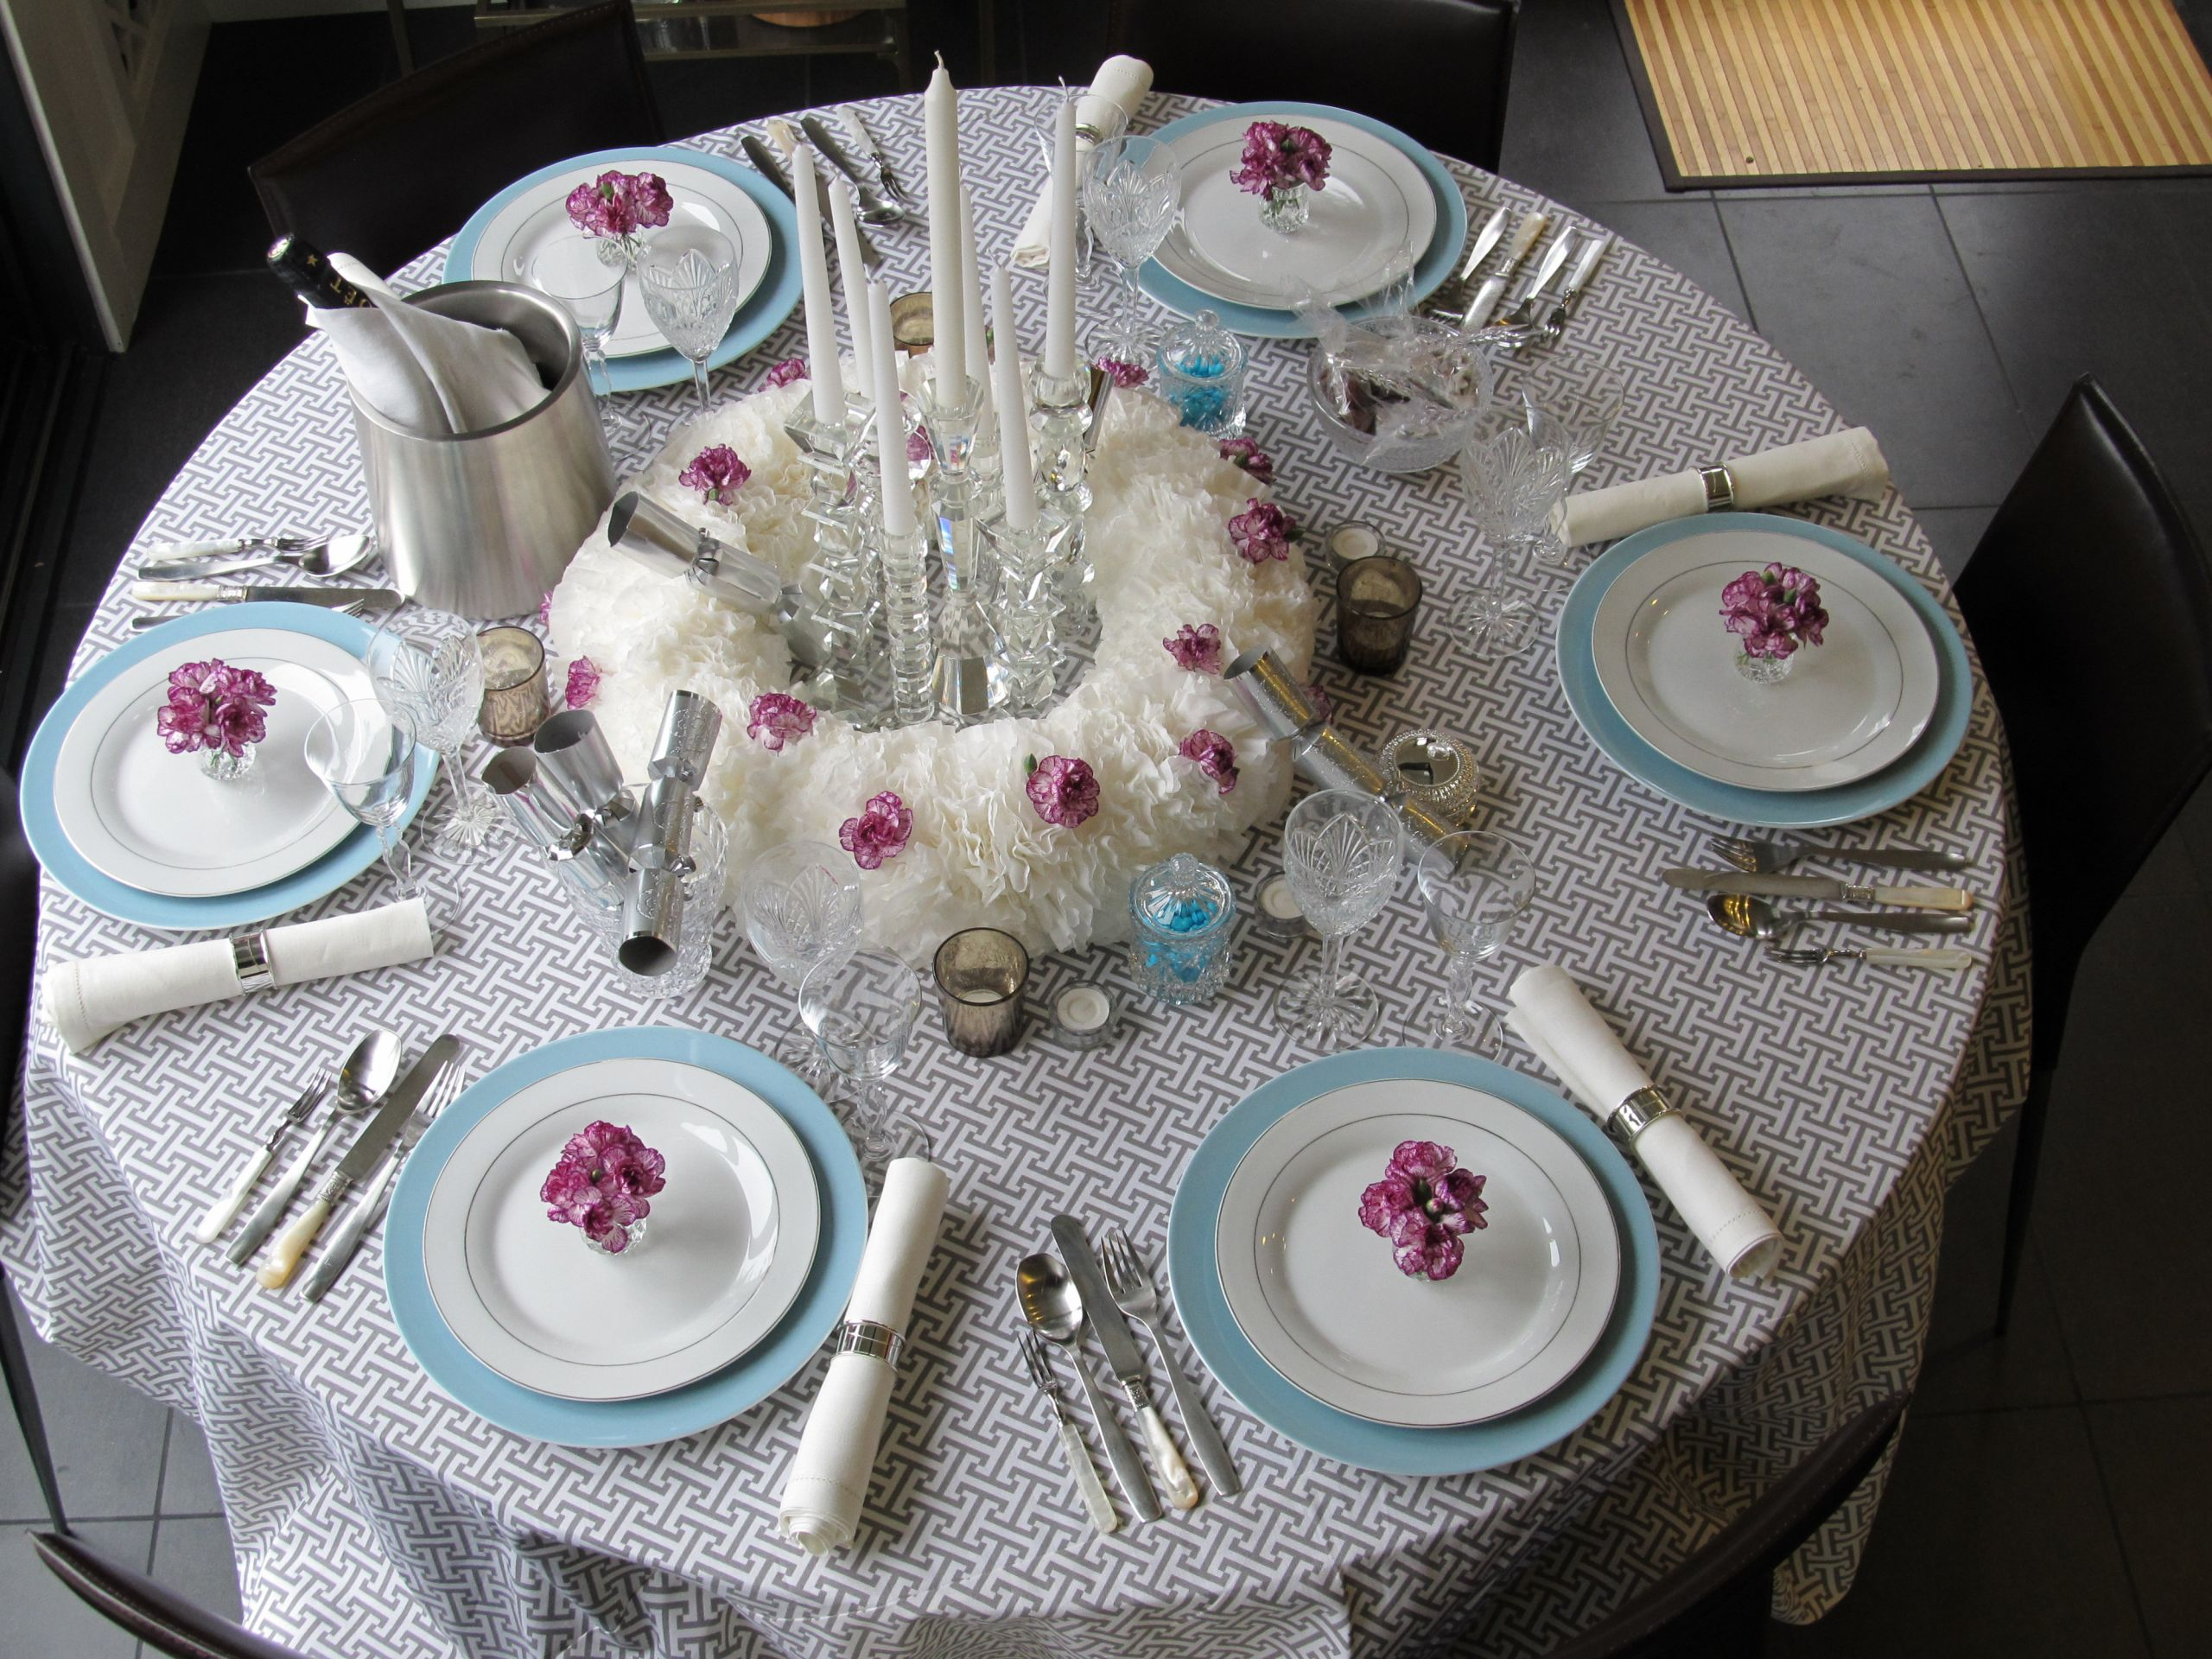 Dinner Party Table Ideas  New Year's Eve Dinner Party Table Setting